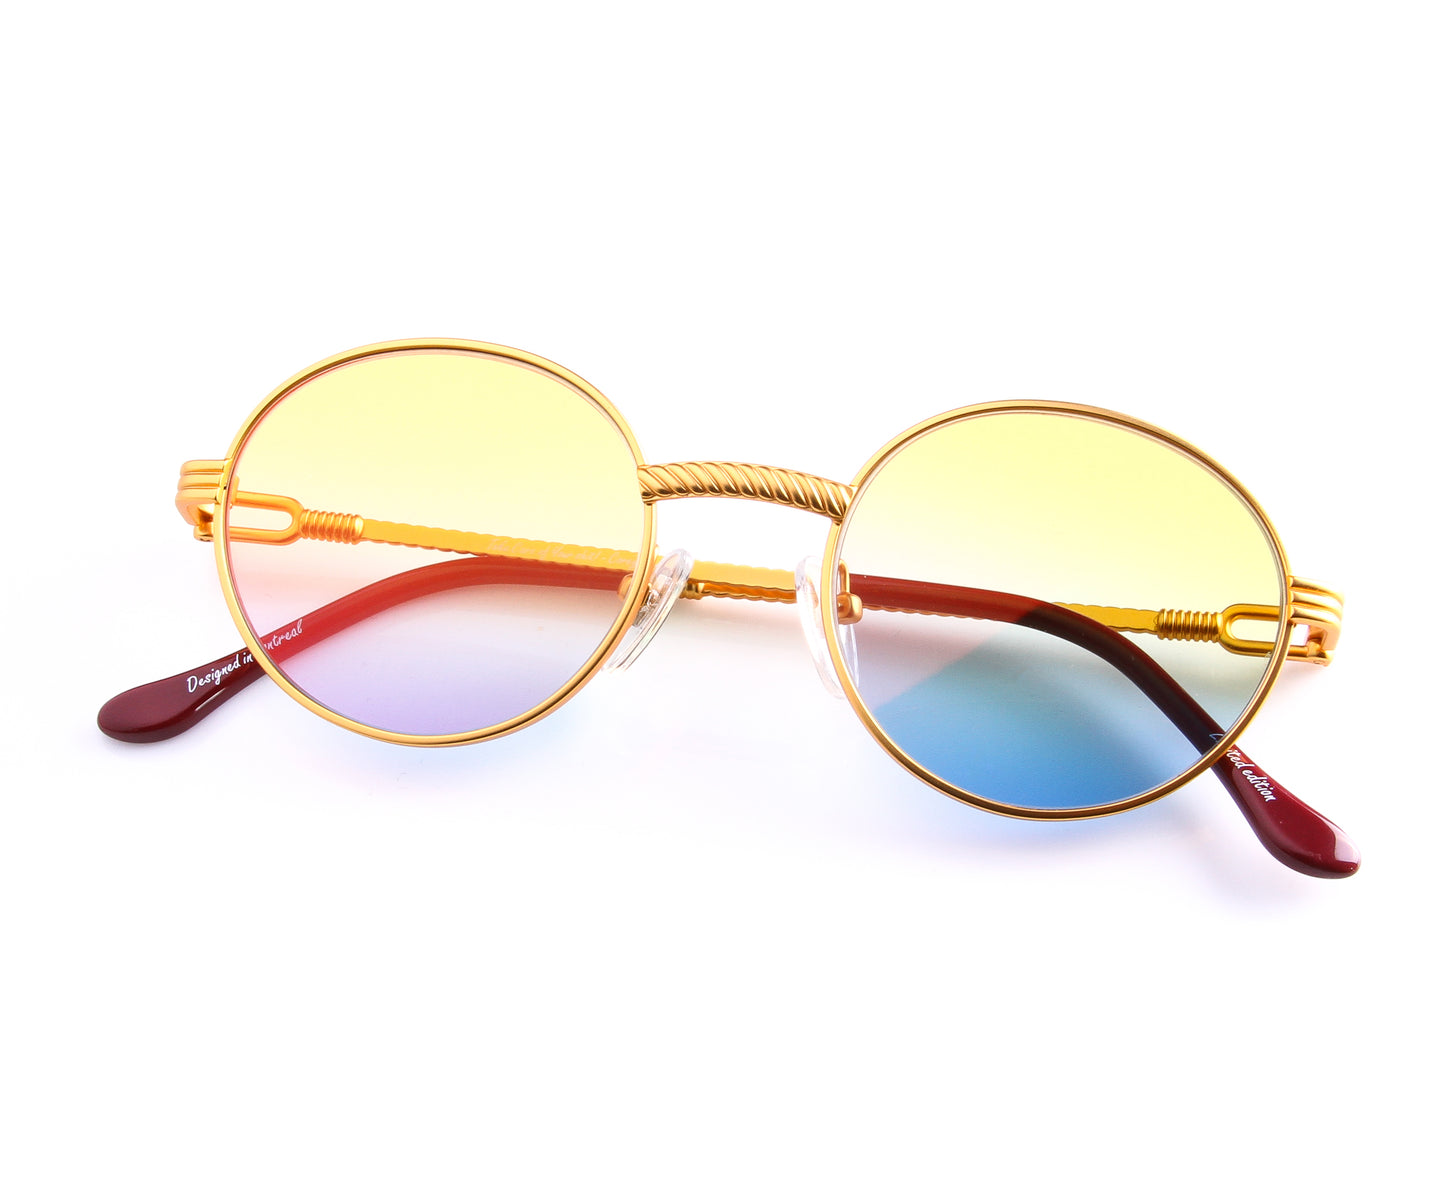 VF 508 18KT Satin Gold (Yellow / Blue), VF by Vintage Frames , glasses frames, eyeglasses online, eyeglass frames, mens glasses, womens glasses, buy glasses online, designer eyeglasses, vintage sunglasses, retro sunglasses, vintage glasses, sunglass, eyeglass, glasses, lens, vintage frames company, vf